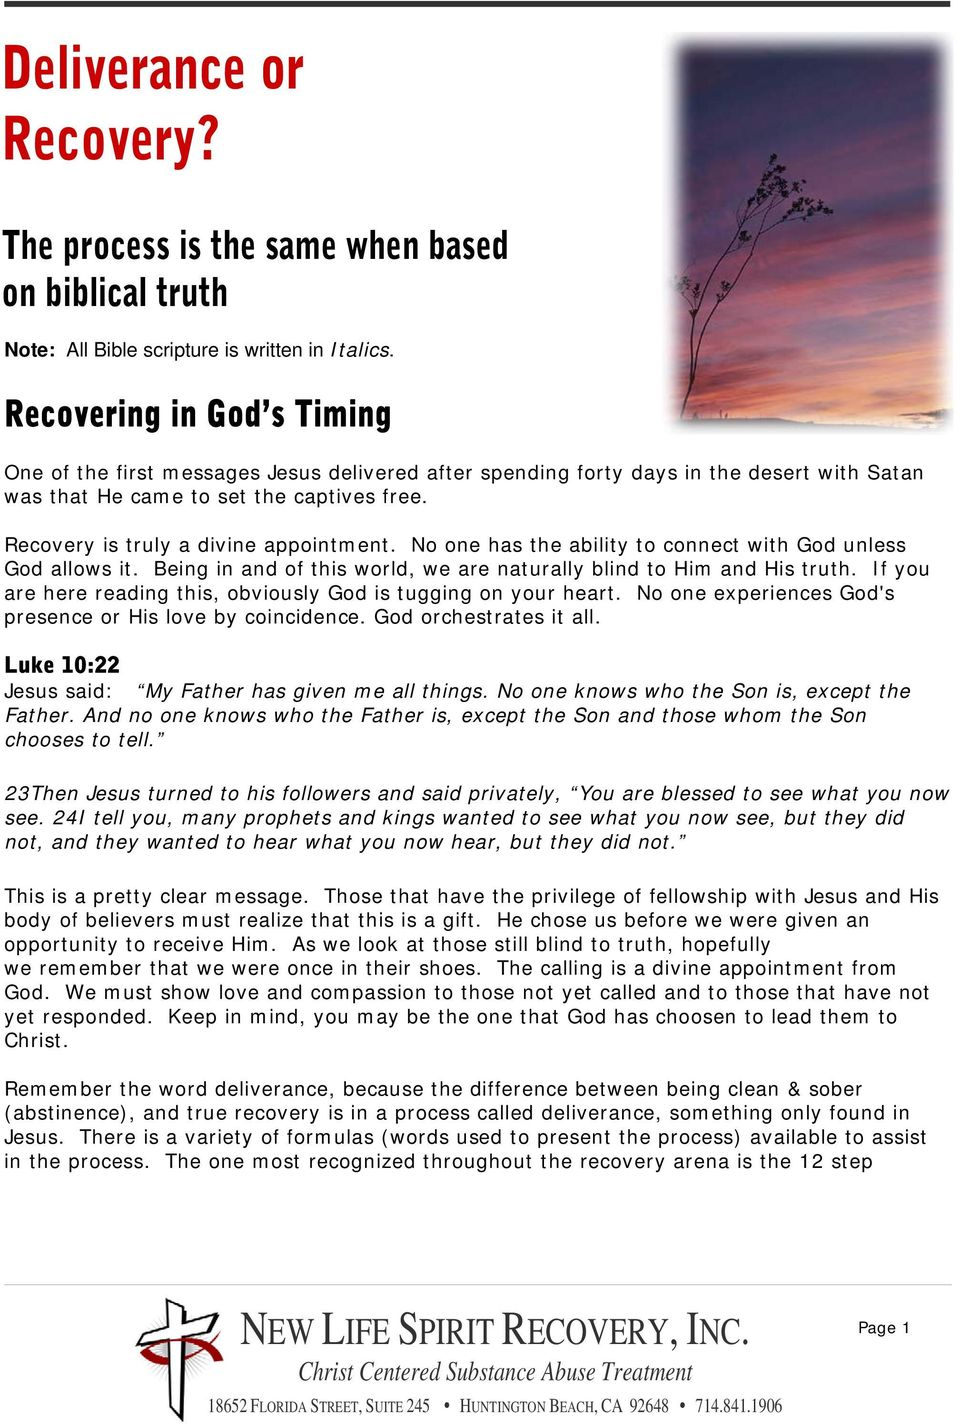 Recovery is truly a divine appointment. No one has the ability to connect with God unless God allows it. Being in and of this world, we are naturally blind to Him and His truth.